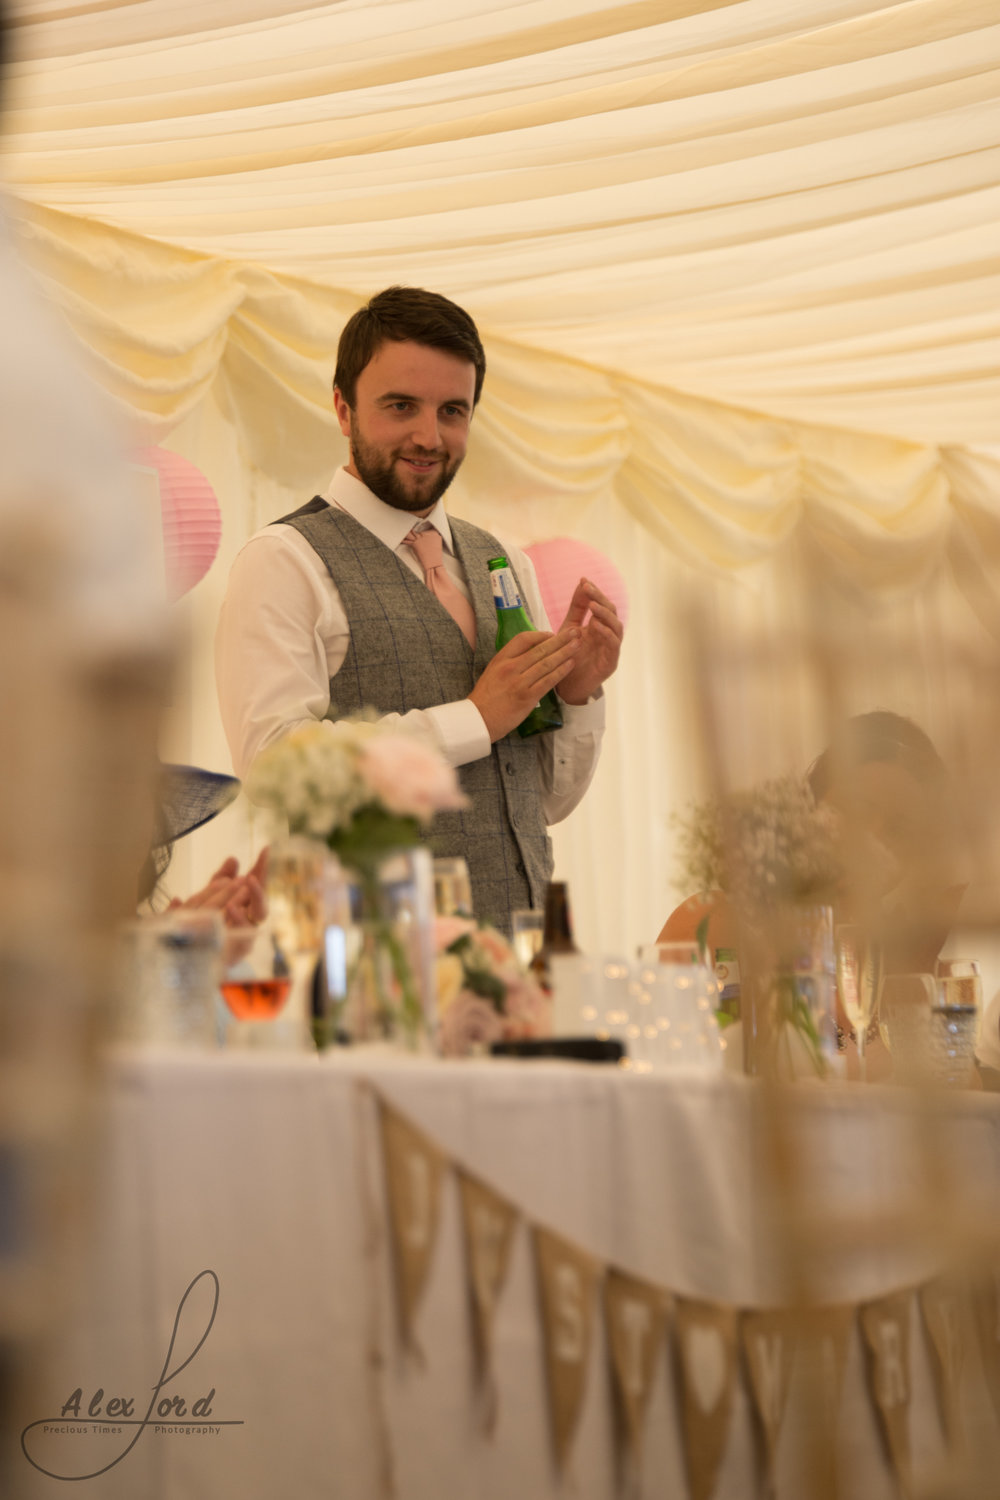 Best man stands behind the top table and delivers his wedding speech